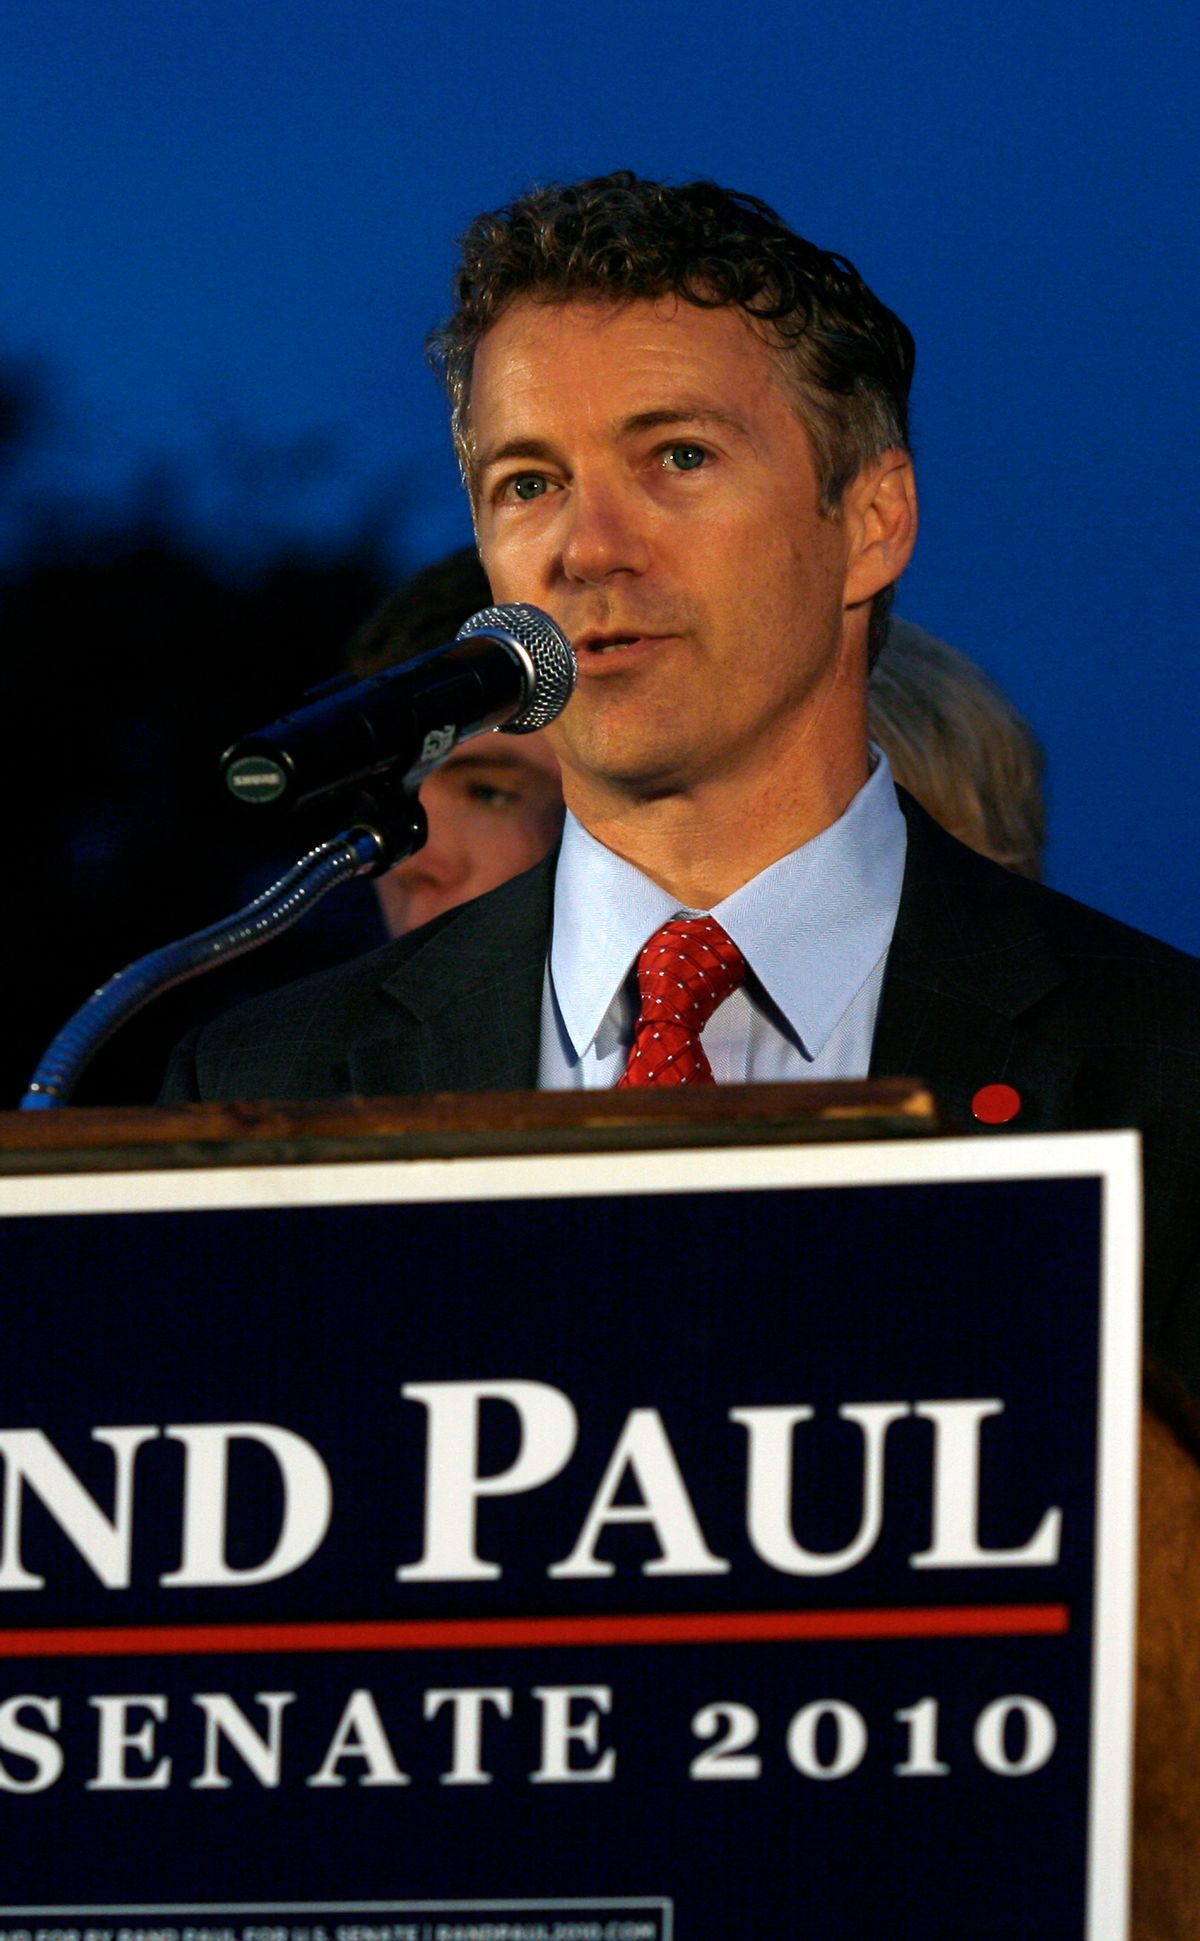 Rand Paul gives his victory speech after winning the Senate Republican primary election in Bowling Green, Kentucky, at Bowling Green Country Club May 18, 2010. Rand Paul, a doctor and son of libertarian Republican Representative Ron, beat Kentucky Secretary of State Trey Grayson for the Republican nomination for an open U.S. Senate seat in a race seen as an early test of the strength of the movement.           REUTERS/Jake Stevens   (UNITED STATES - Tags: POLITICS ELECTIONS) (Reuters)